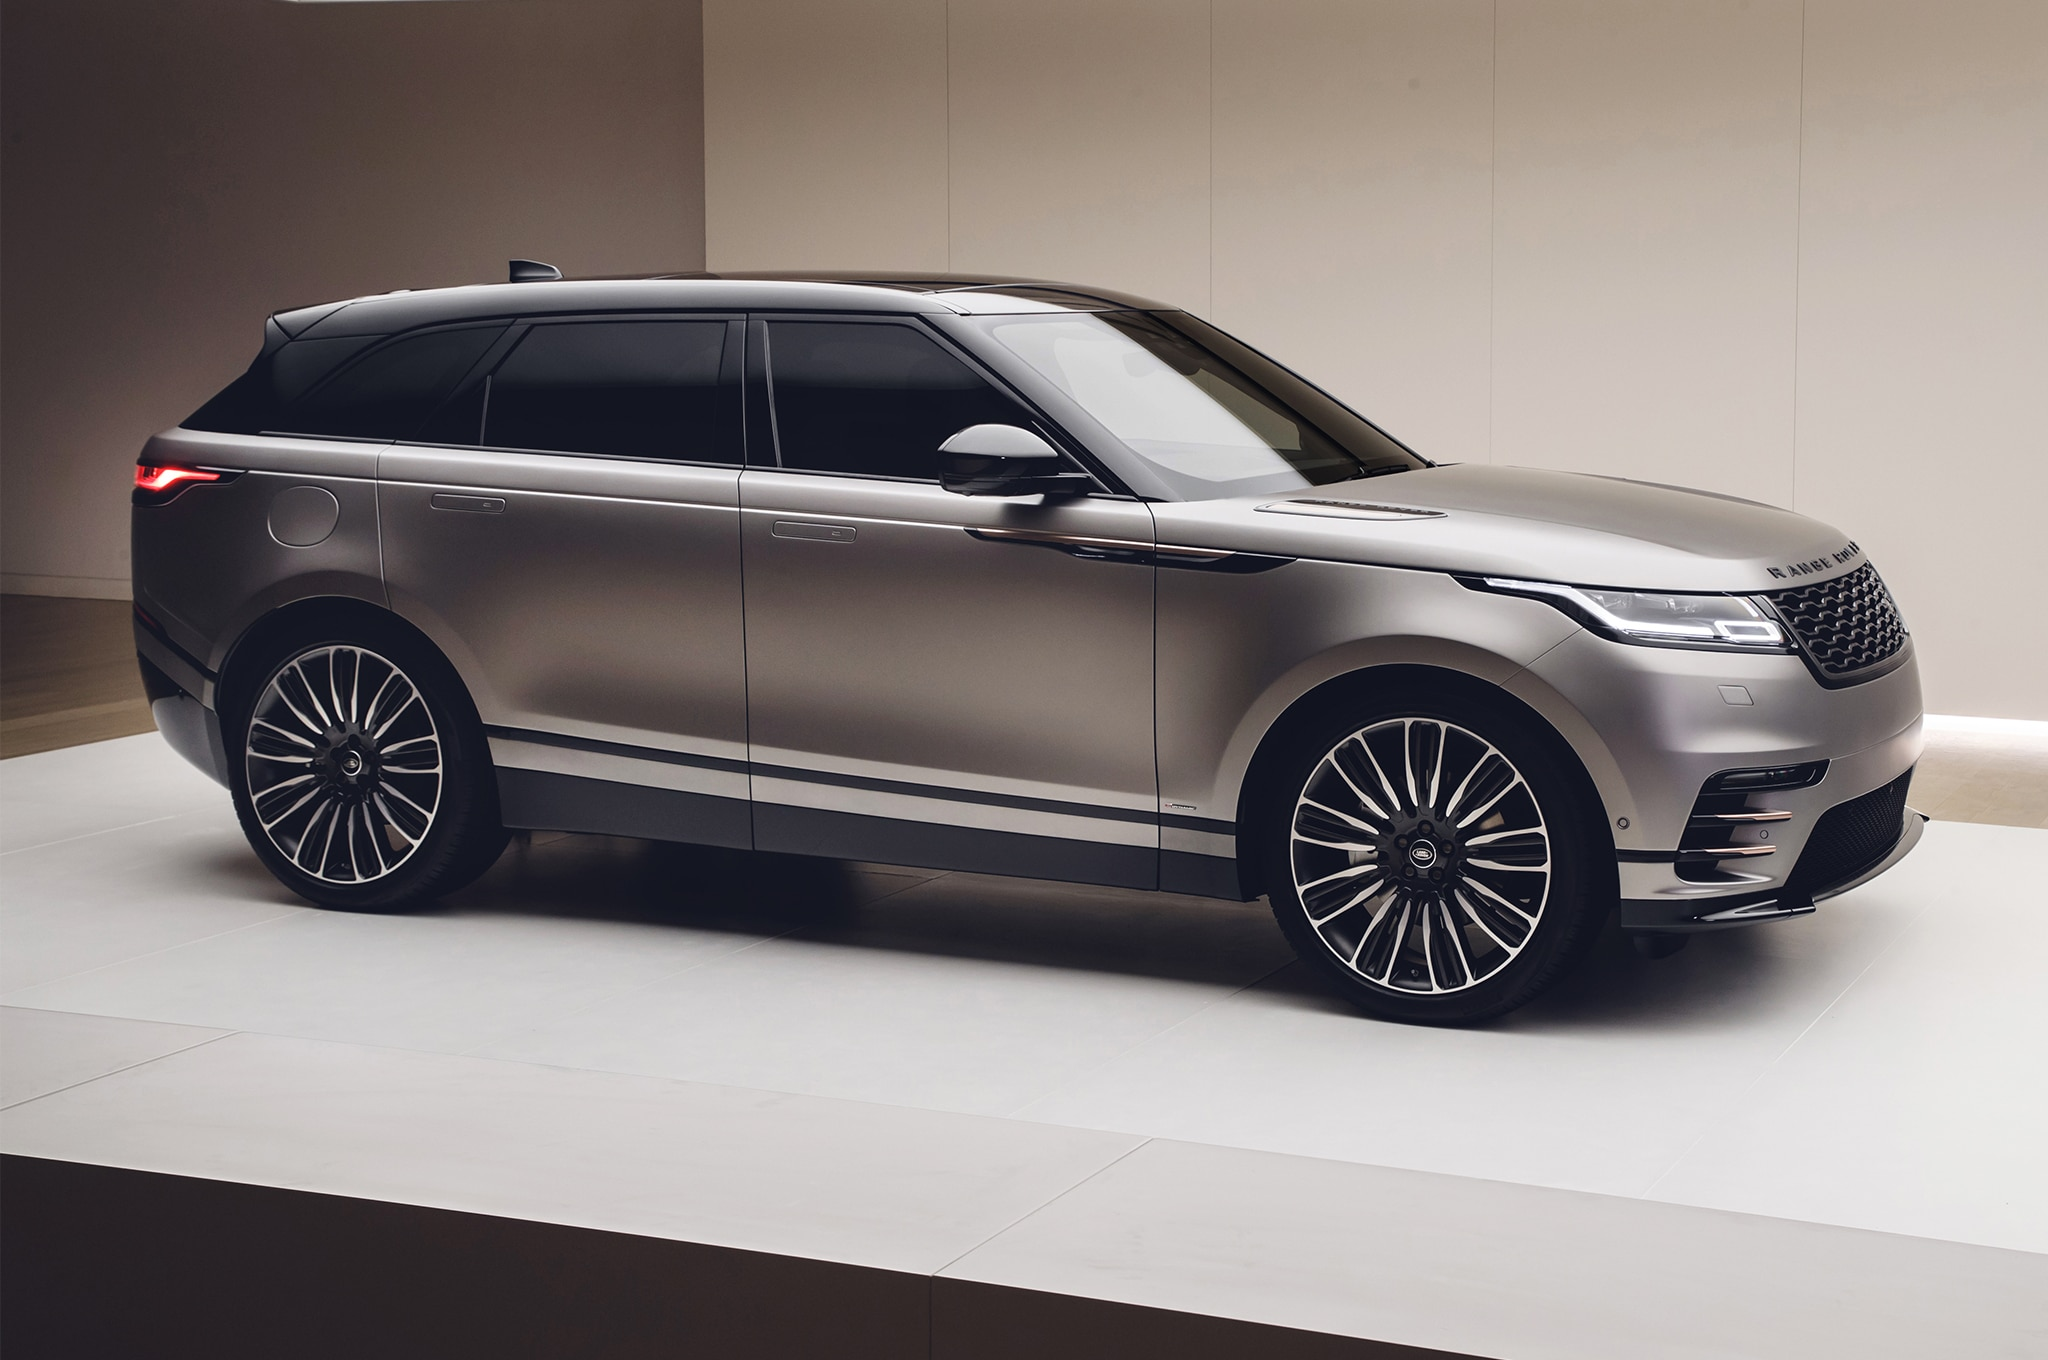 2018 land rover velar price.  2018 2018 land rover range velar with ellie goulding 05   with land rover velar price